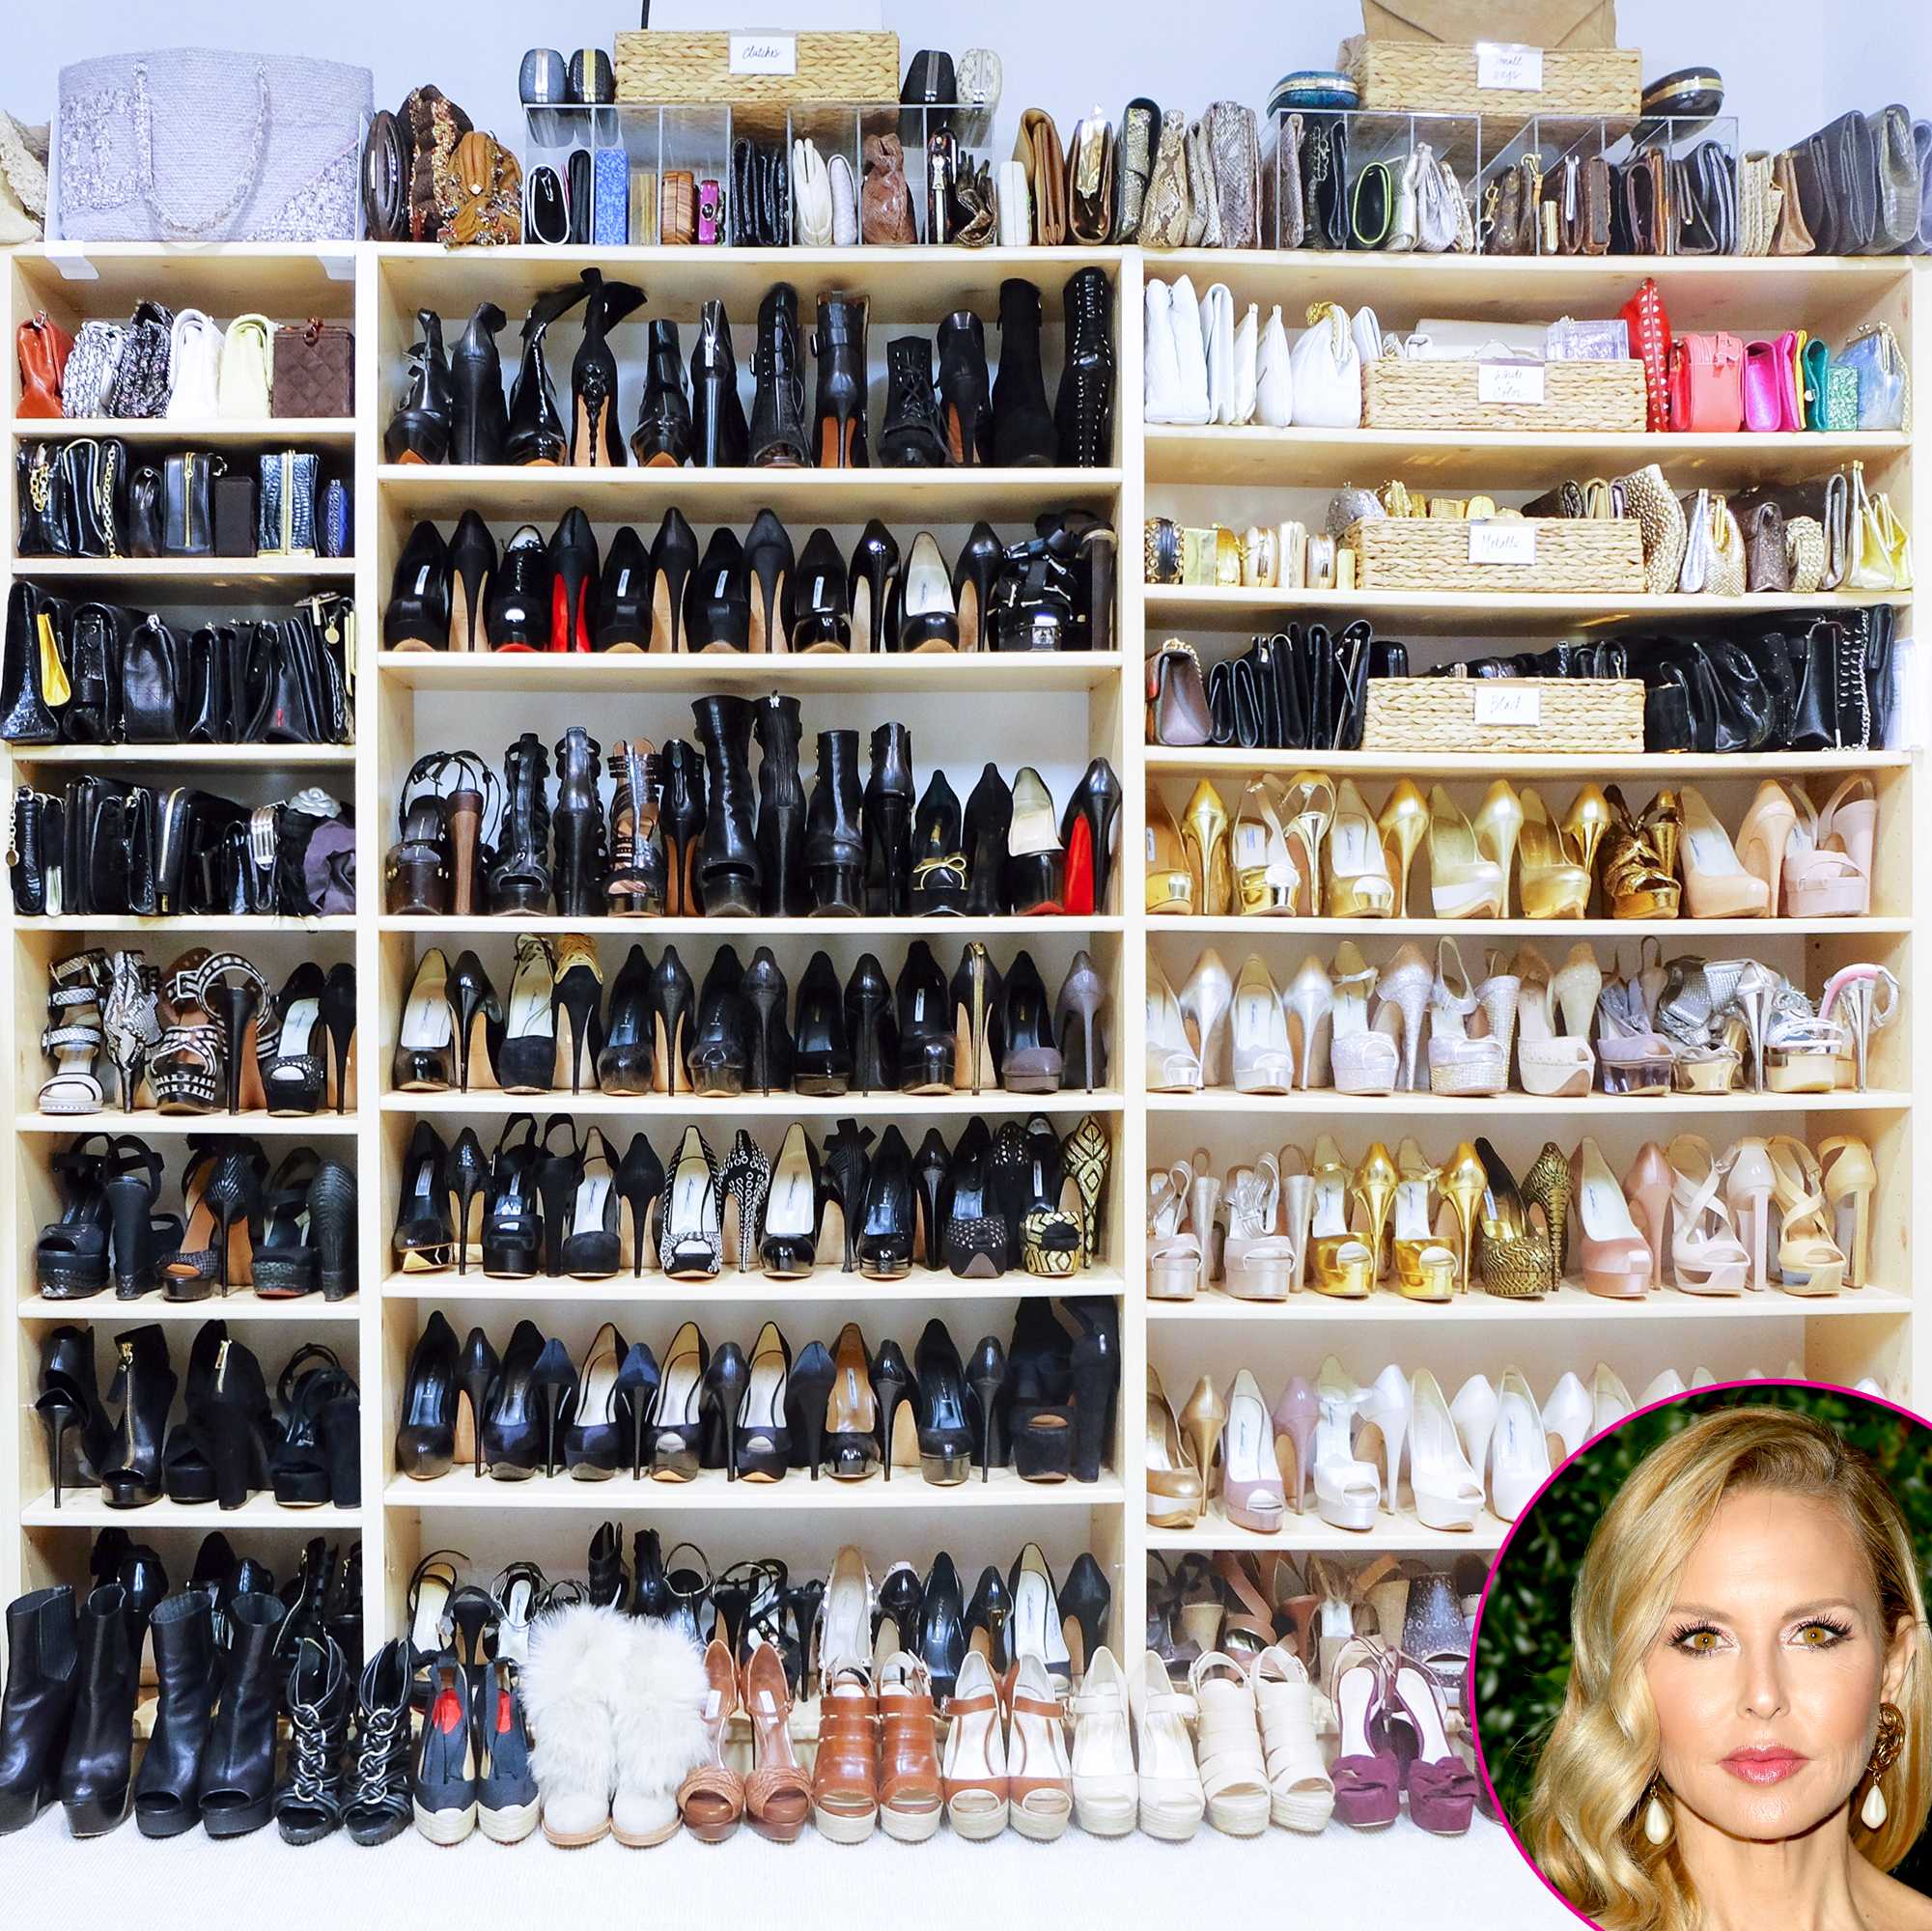 Rachel-Zoe - The stylist definitely gives Decker a run for money in the shoe department: Zoe' s heels don't even fit onto the shelves, spilling over onto the floor!